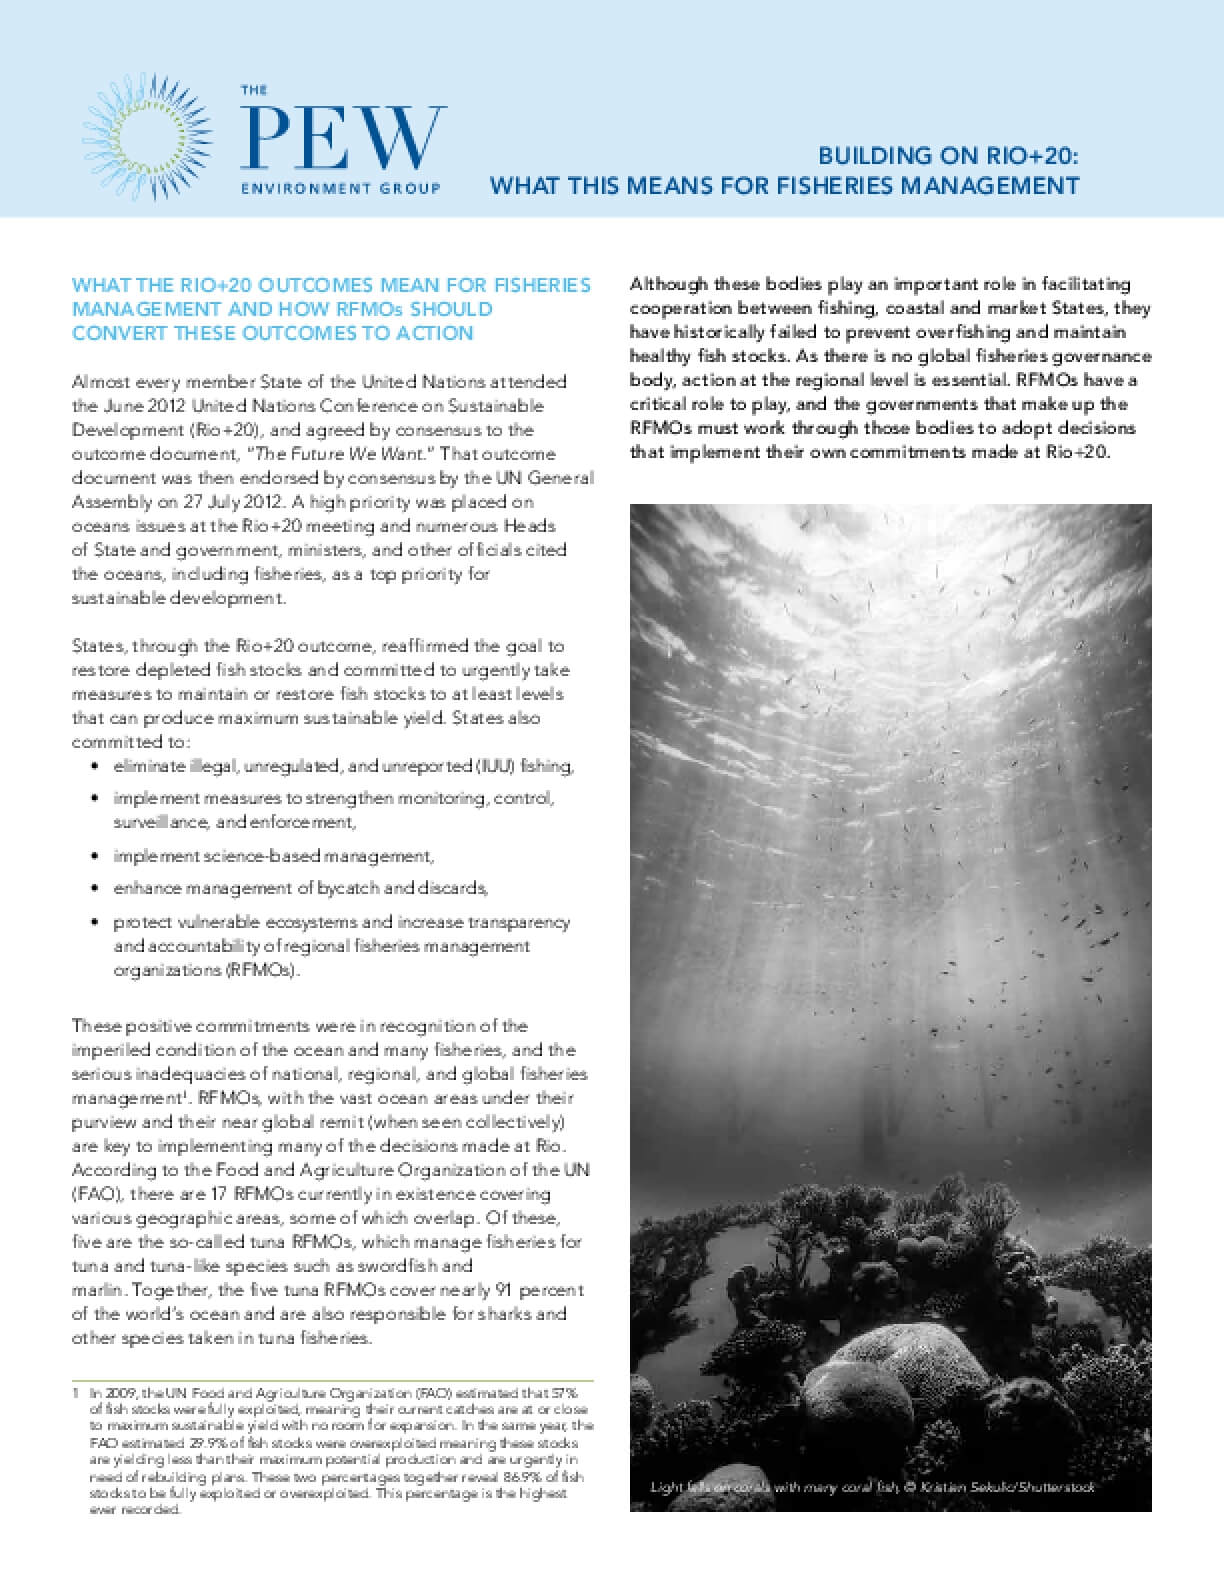 Building on Rio+20: What This Means for Fisheries Management